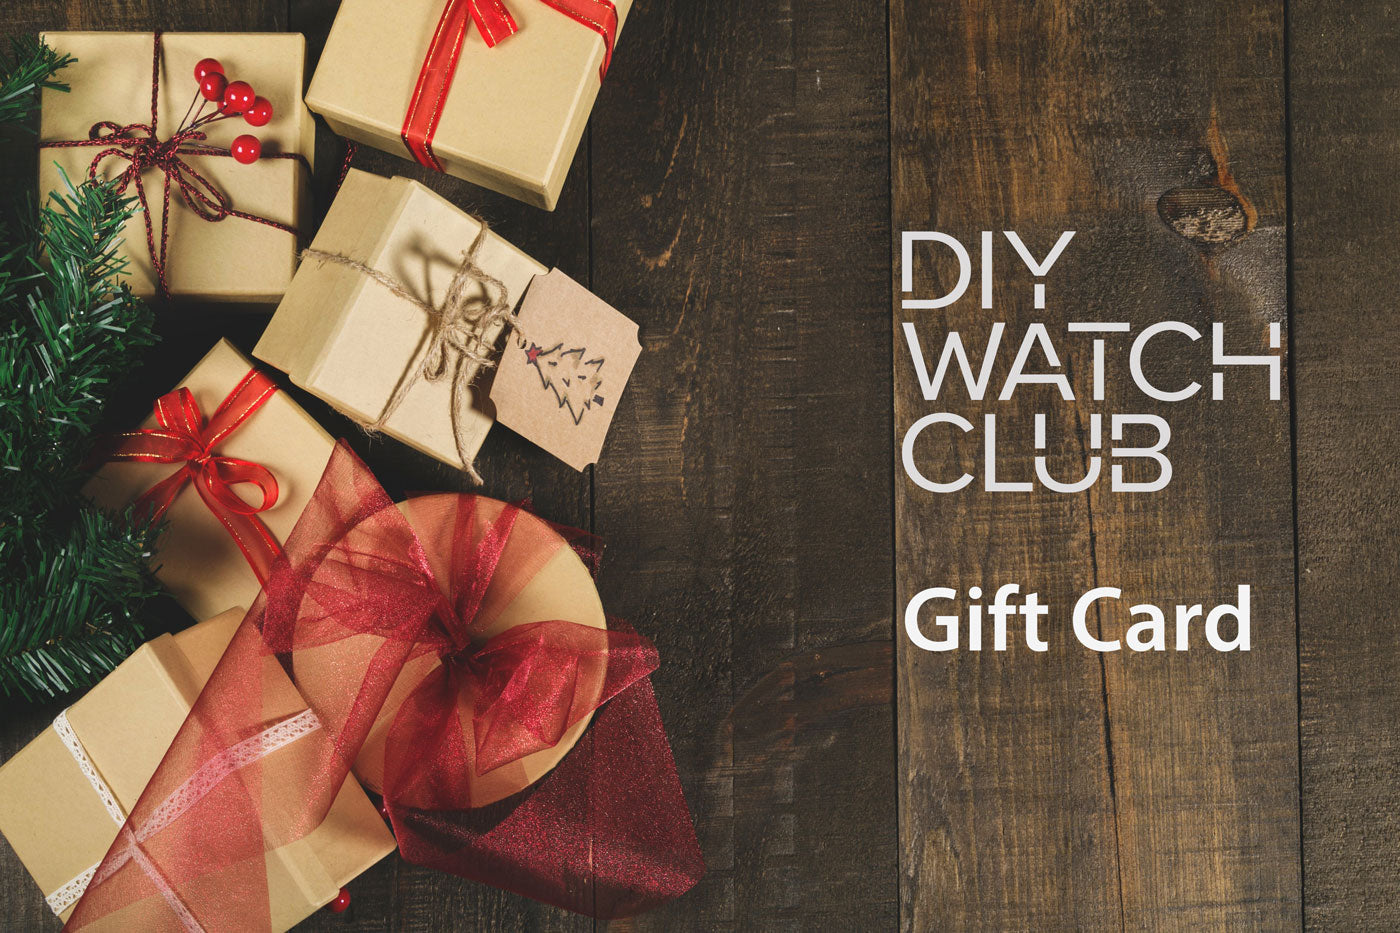 DIY Watch Club Gift Card